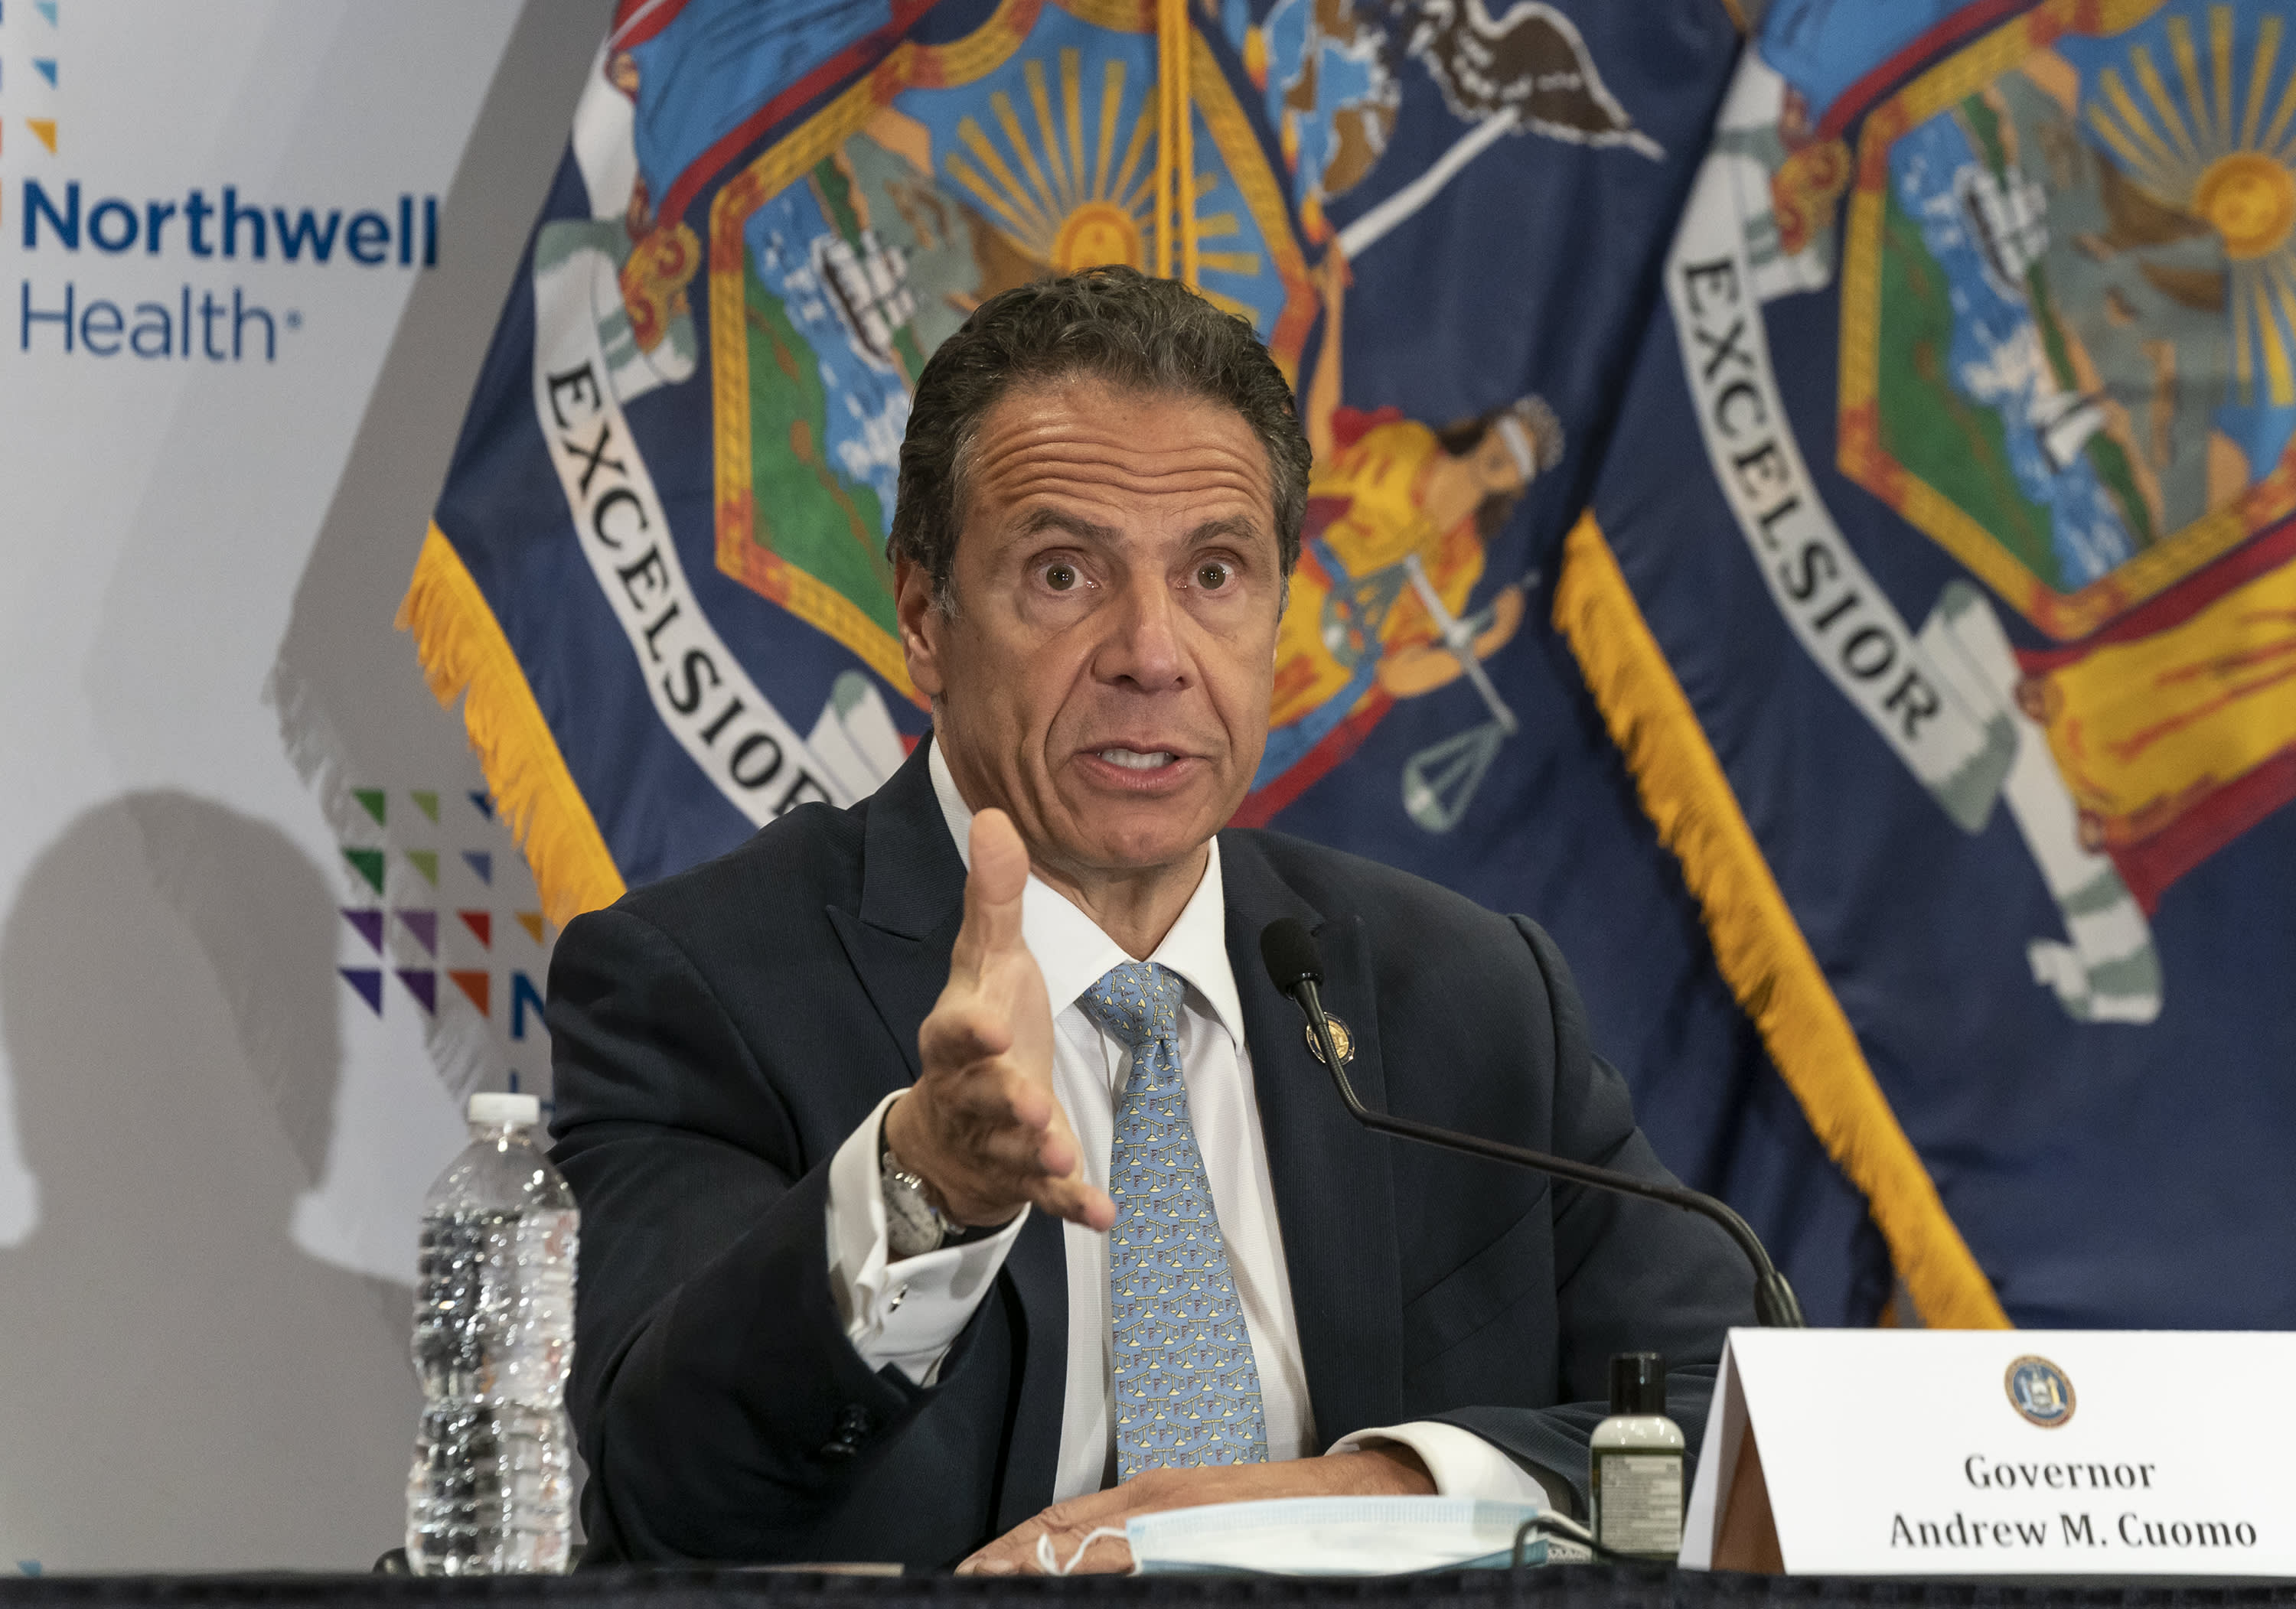 NY schools should plan as if they are reopening in September, but Cuomo says it's too early to decide